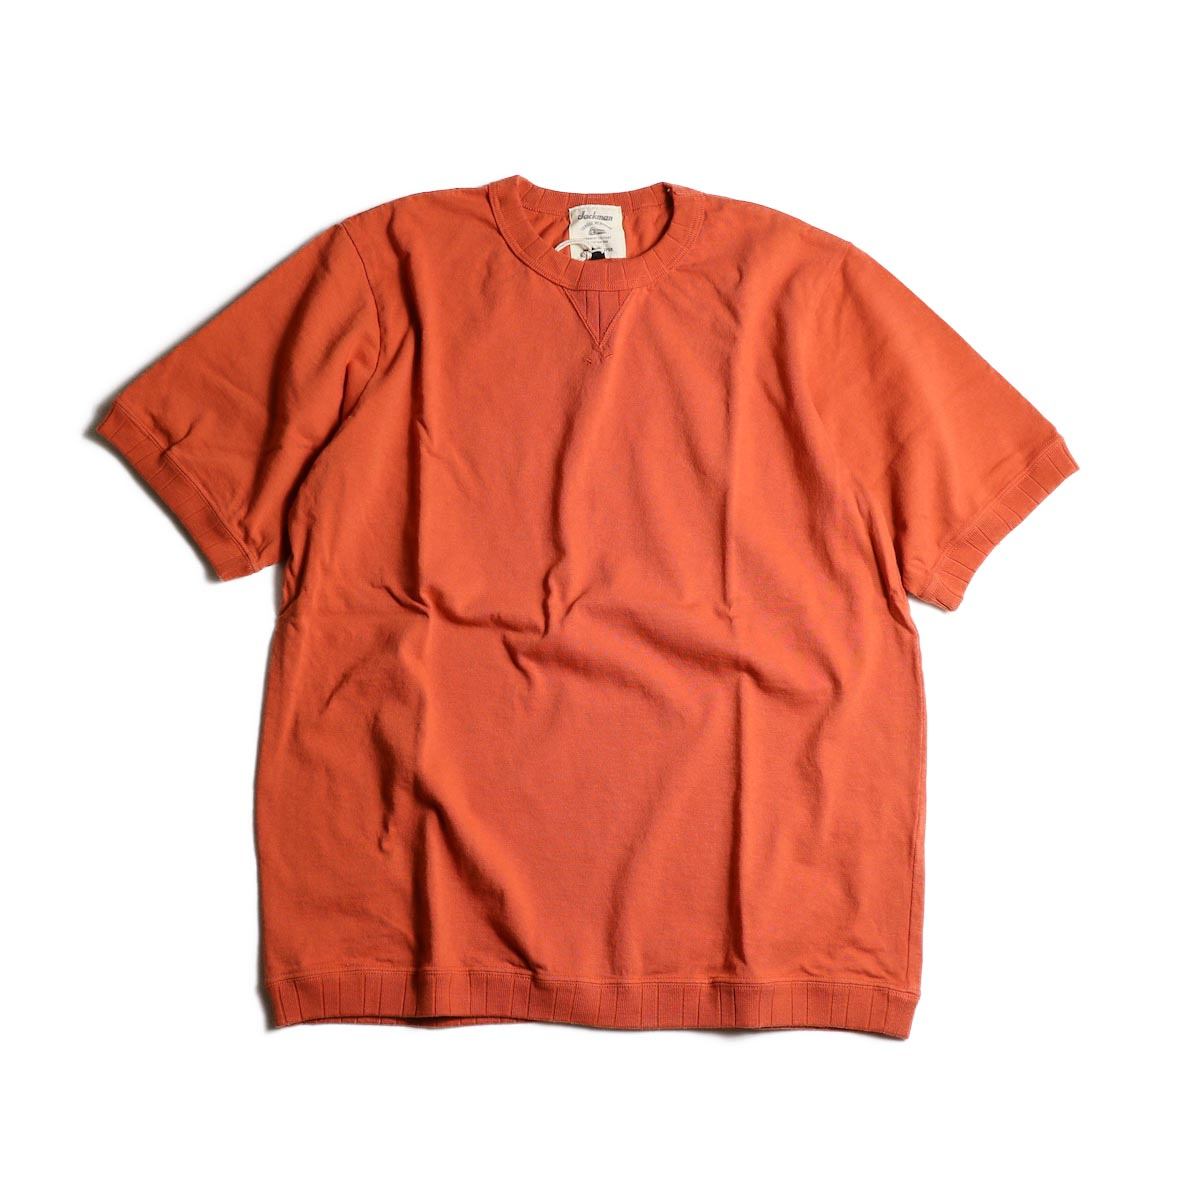 Jackman / Rib T-Shirt (Sunset Orange)正面